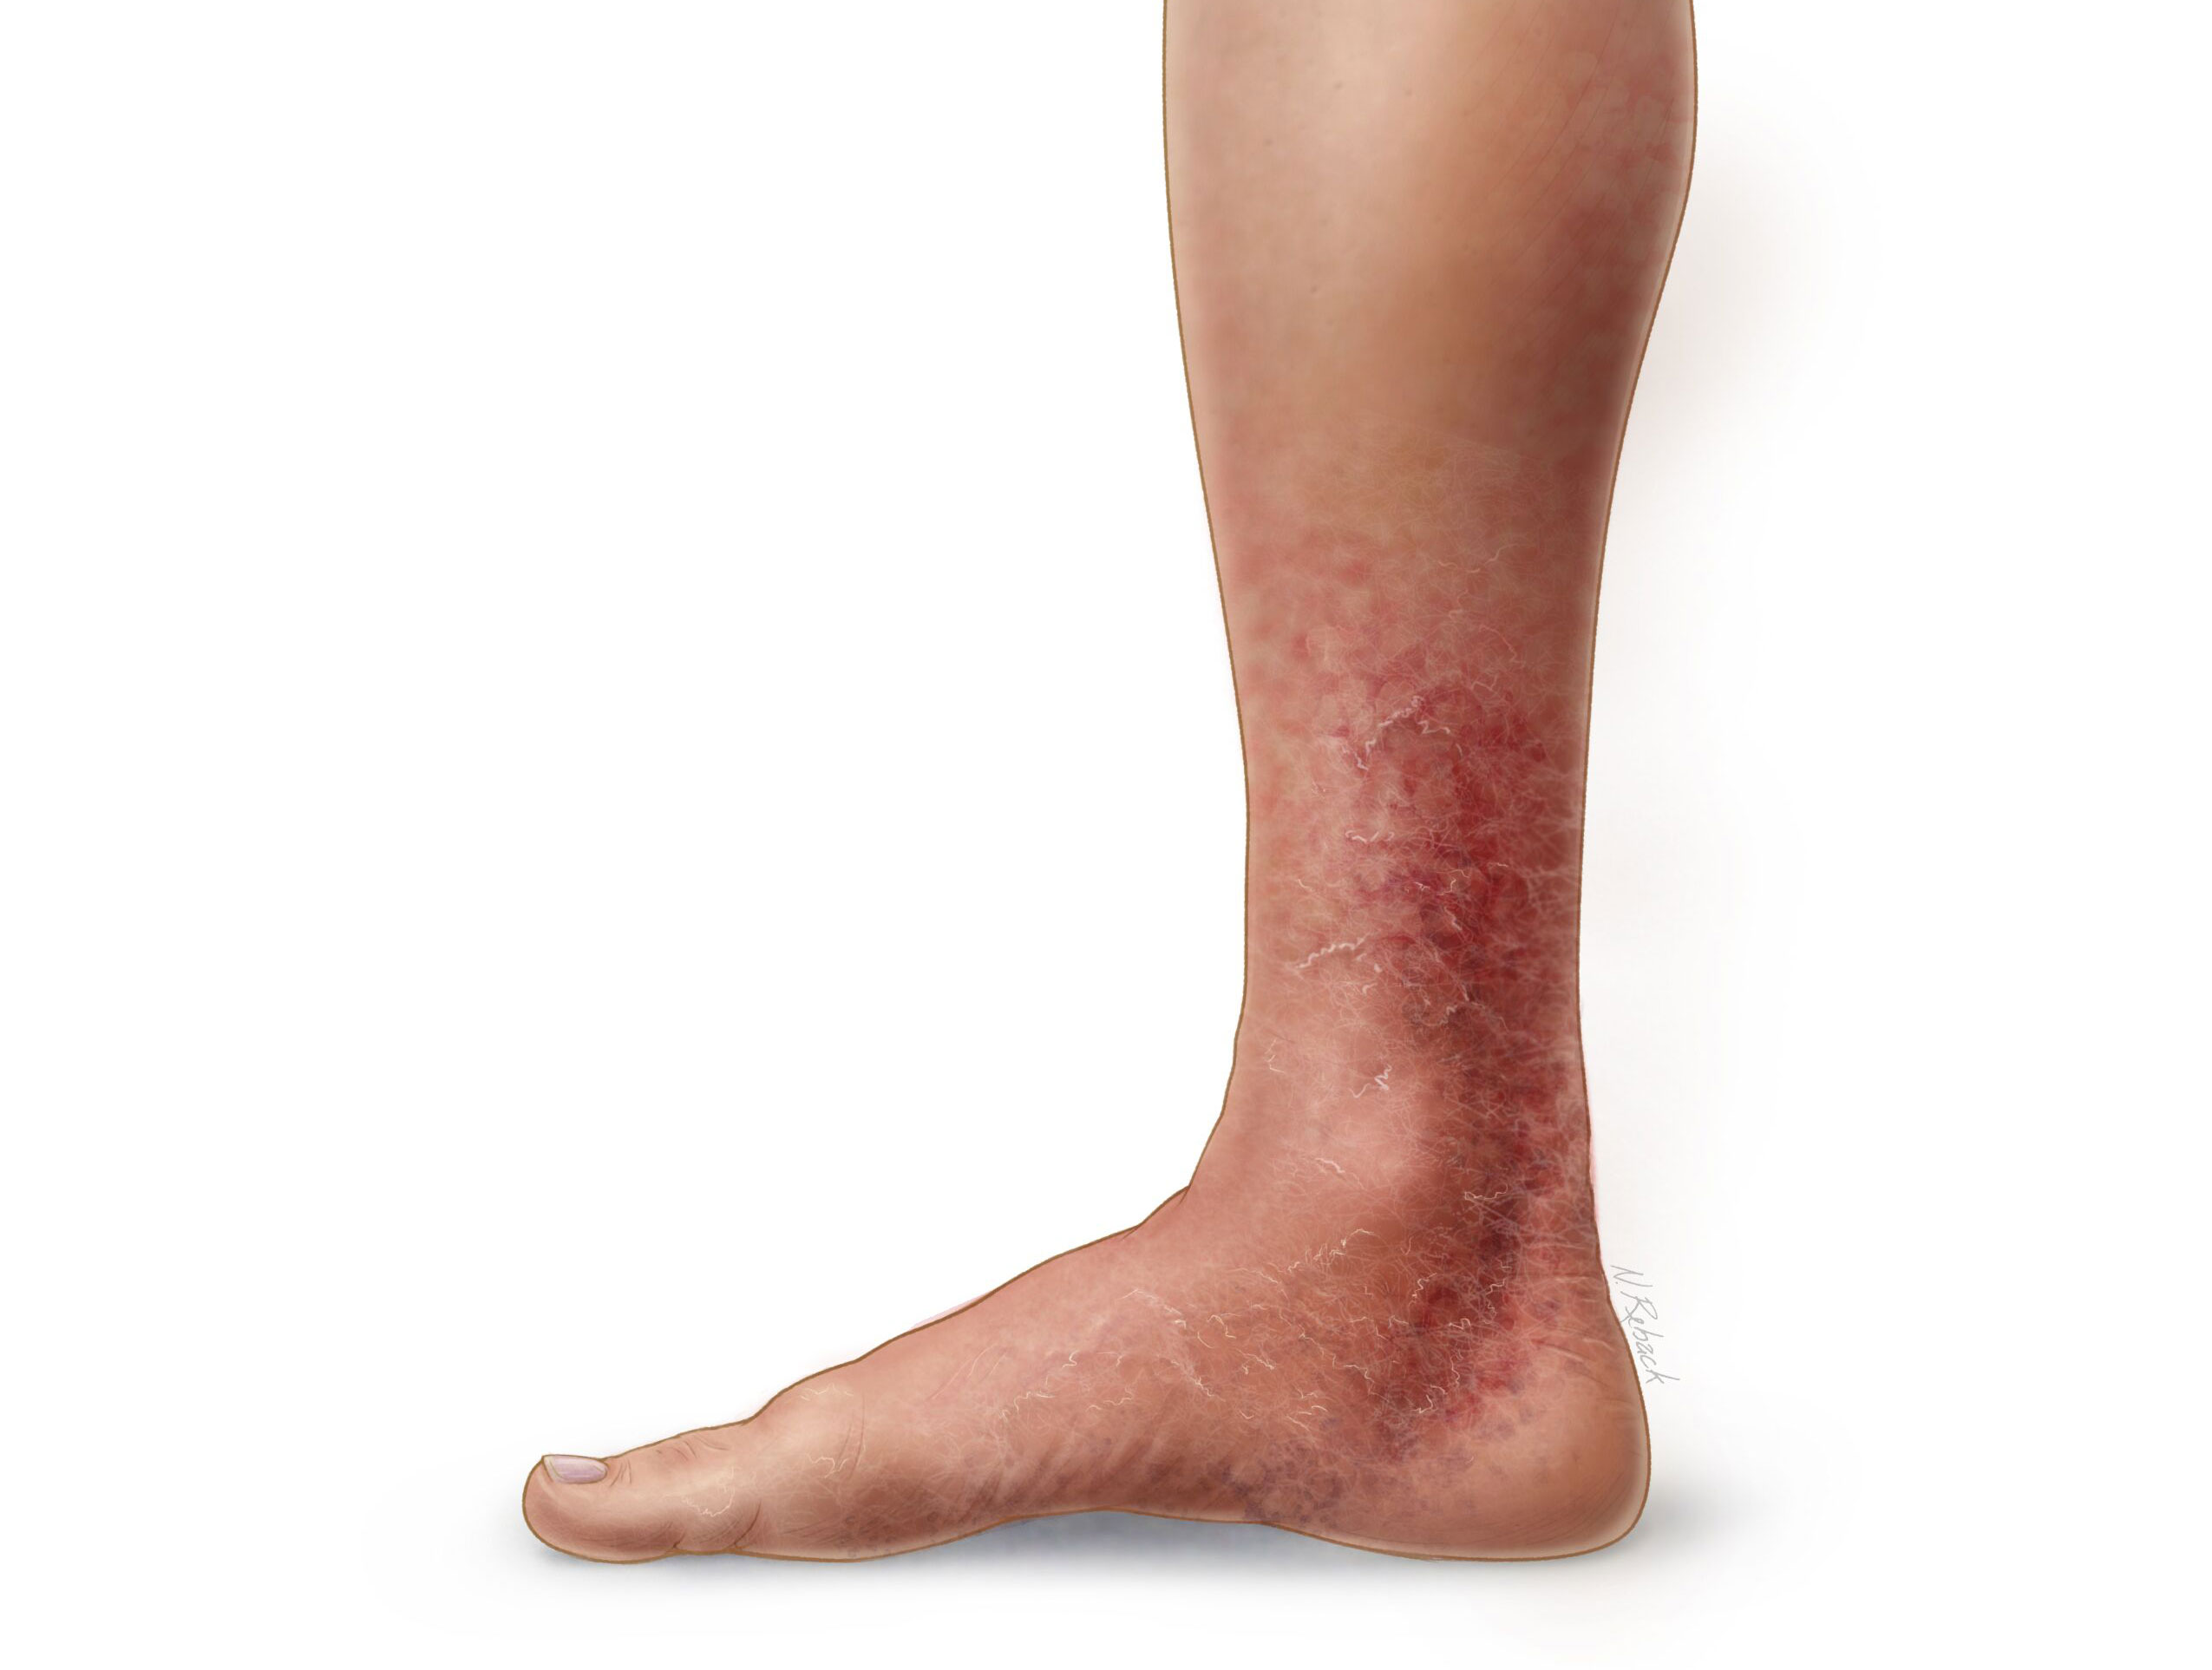 Medical illustration of a leg with venous discoloration